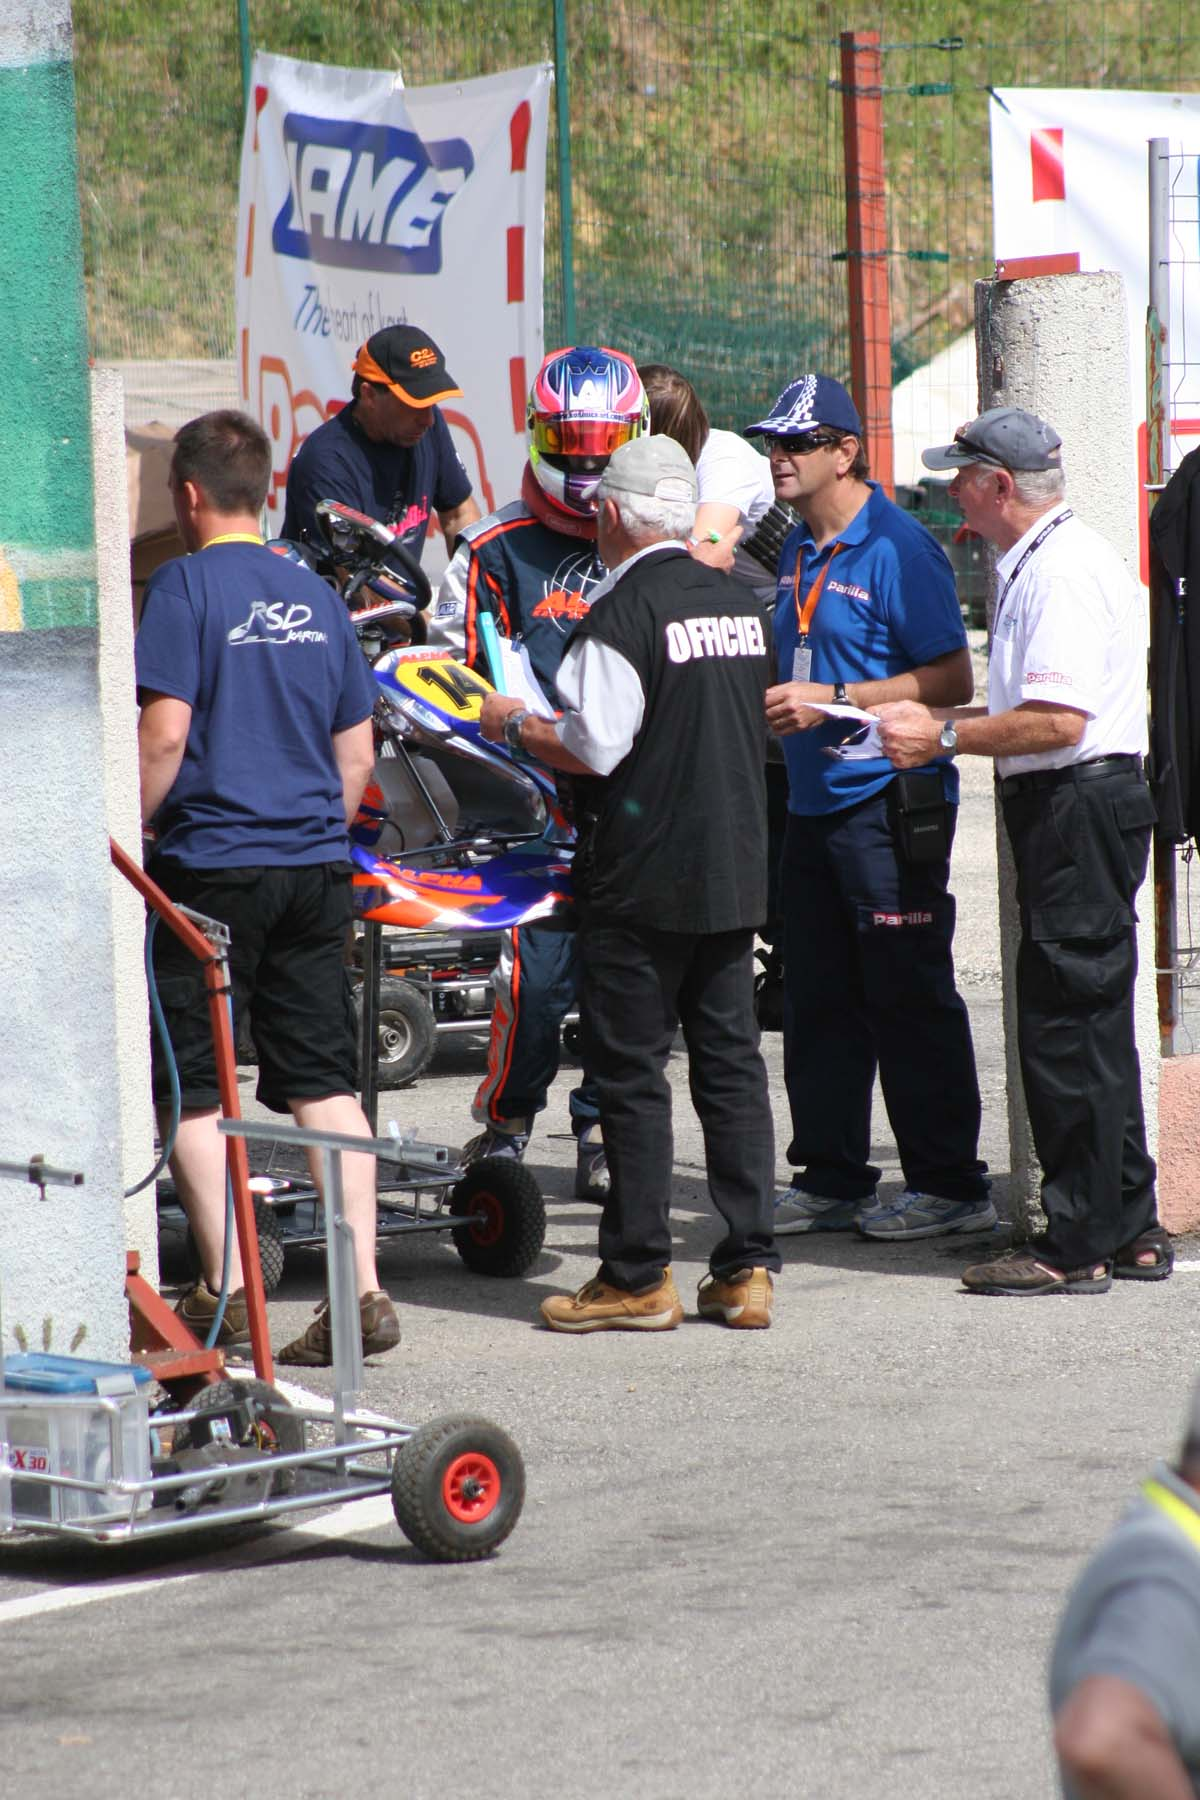 Hughes_waiting_to_get_through_Technical_check_to_head_out_onto_the_grid_for_one_of_his_heats